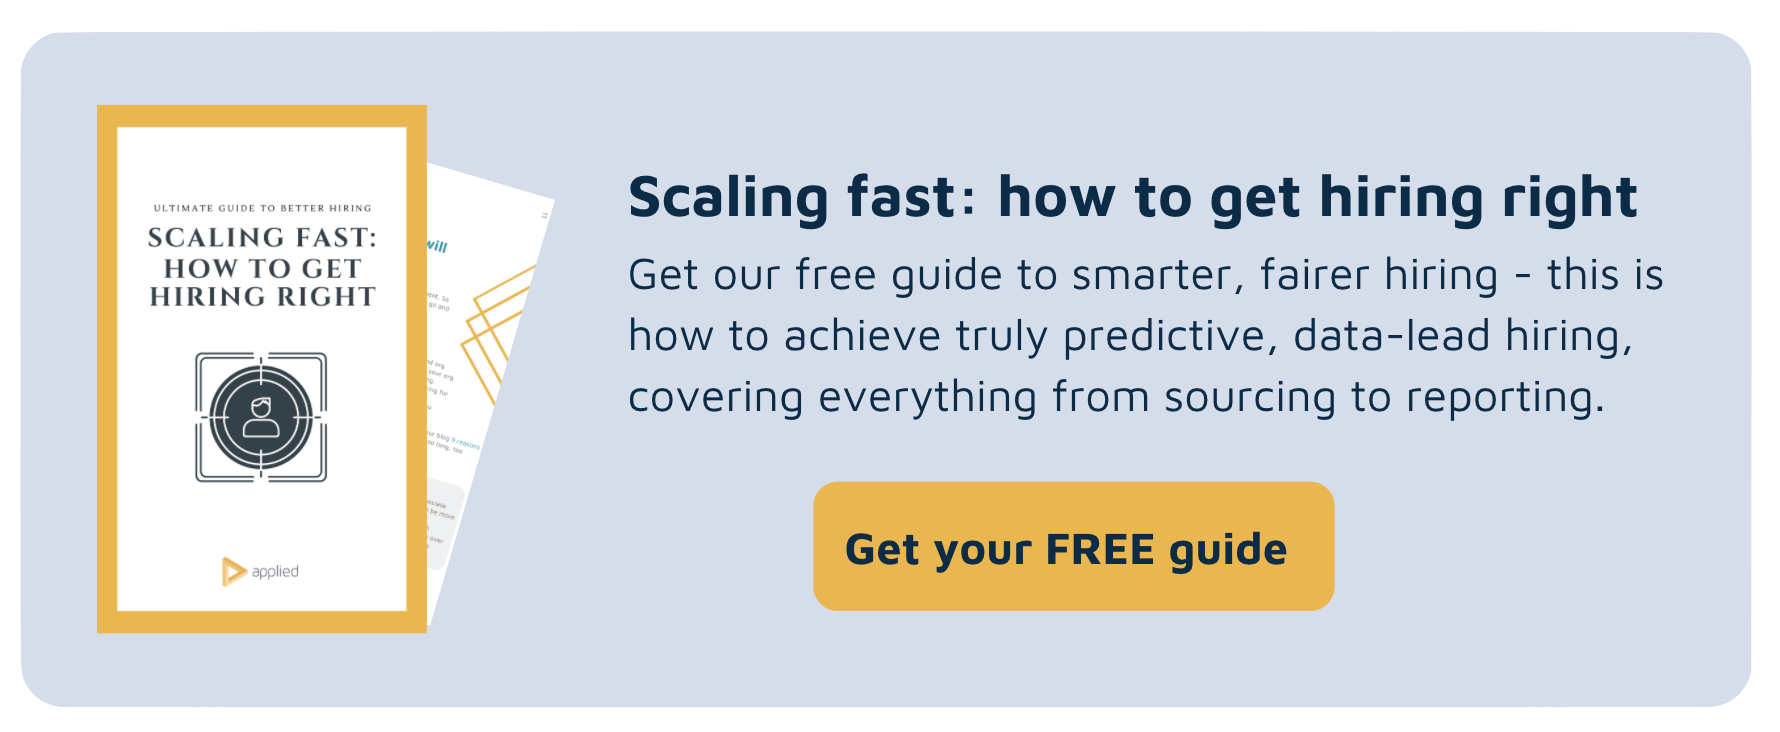 Scaling fast guide